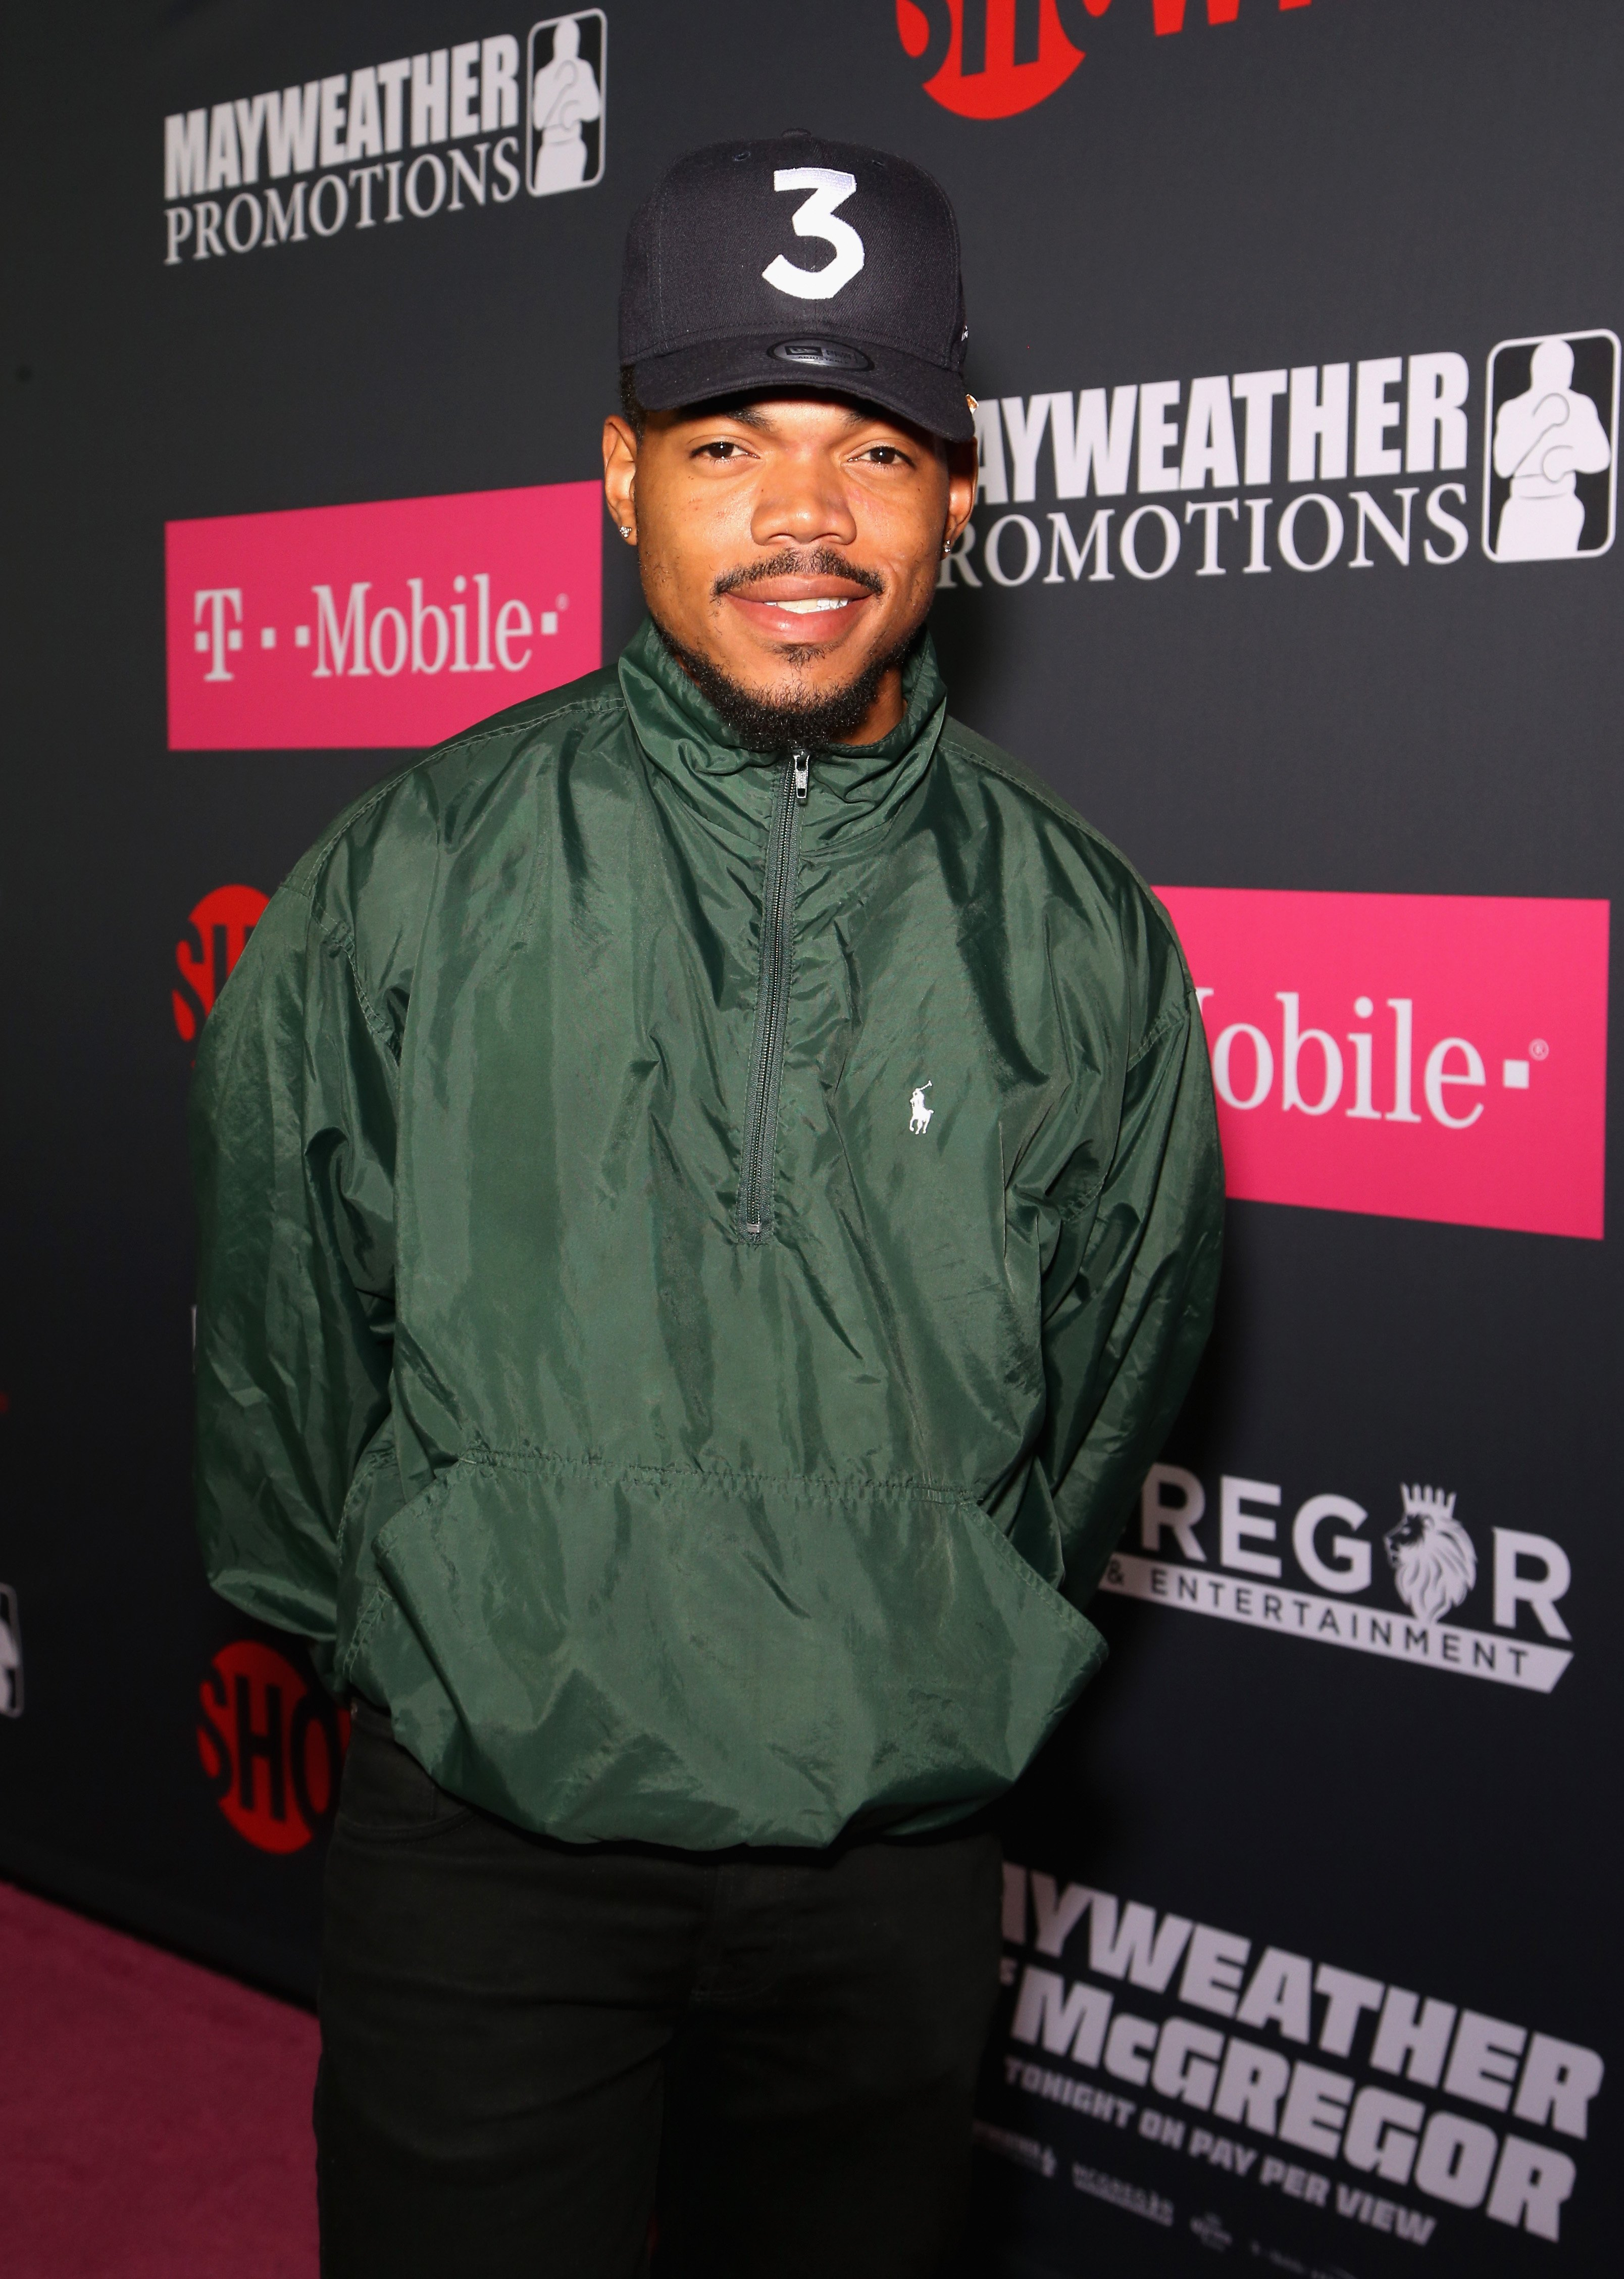 Chance the Rapper at a pre-fight party for the Mayweather vs. McGregor match in Las Vegas in 2017. | Photo: Getty Images